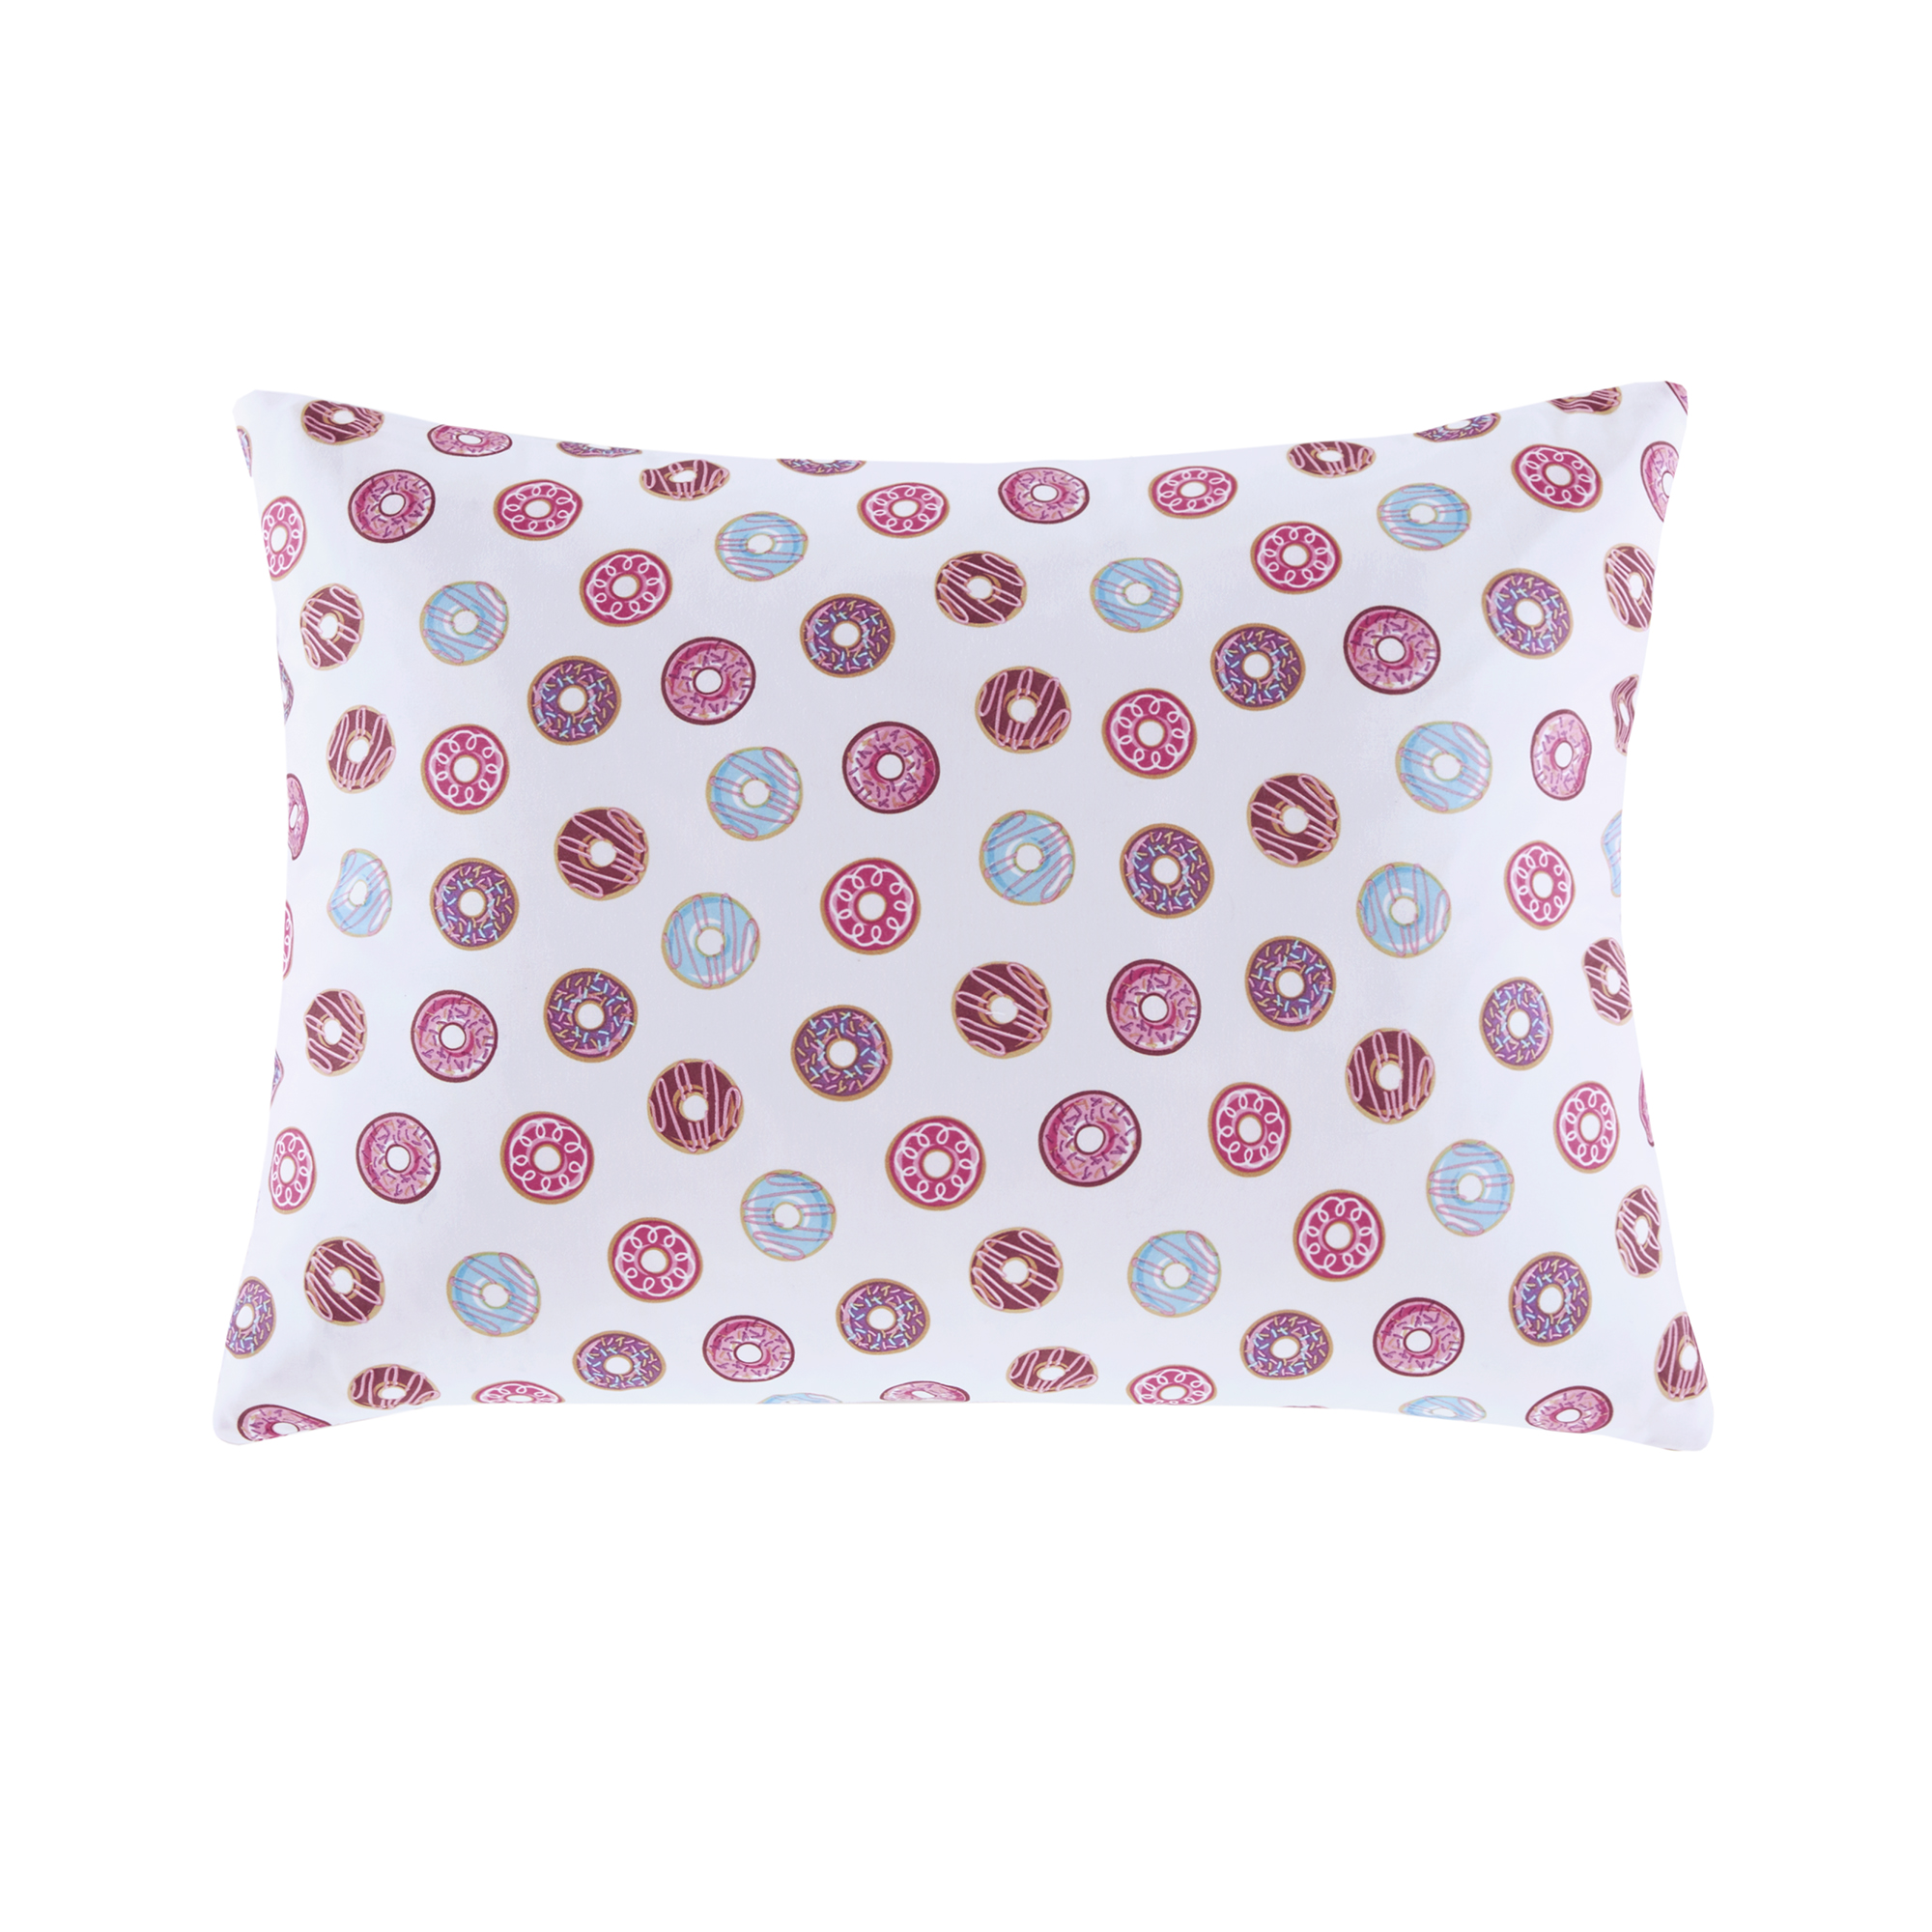 mainstays microfiber travel pillow cover 1 each